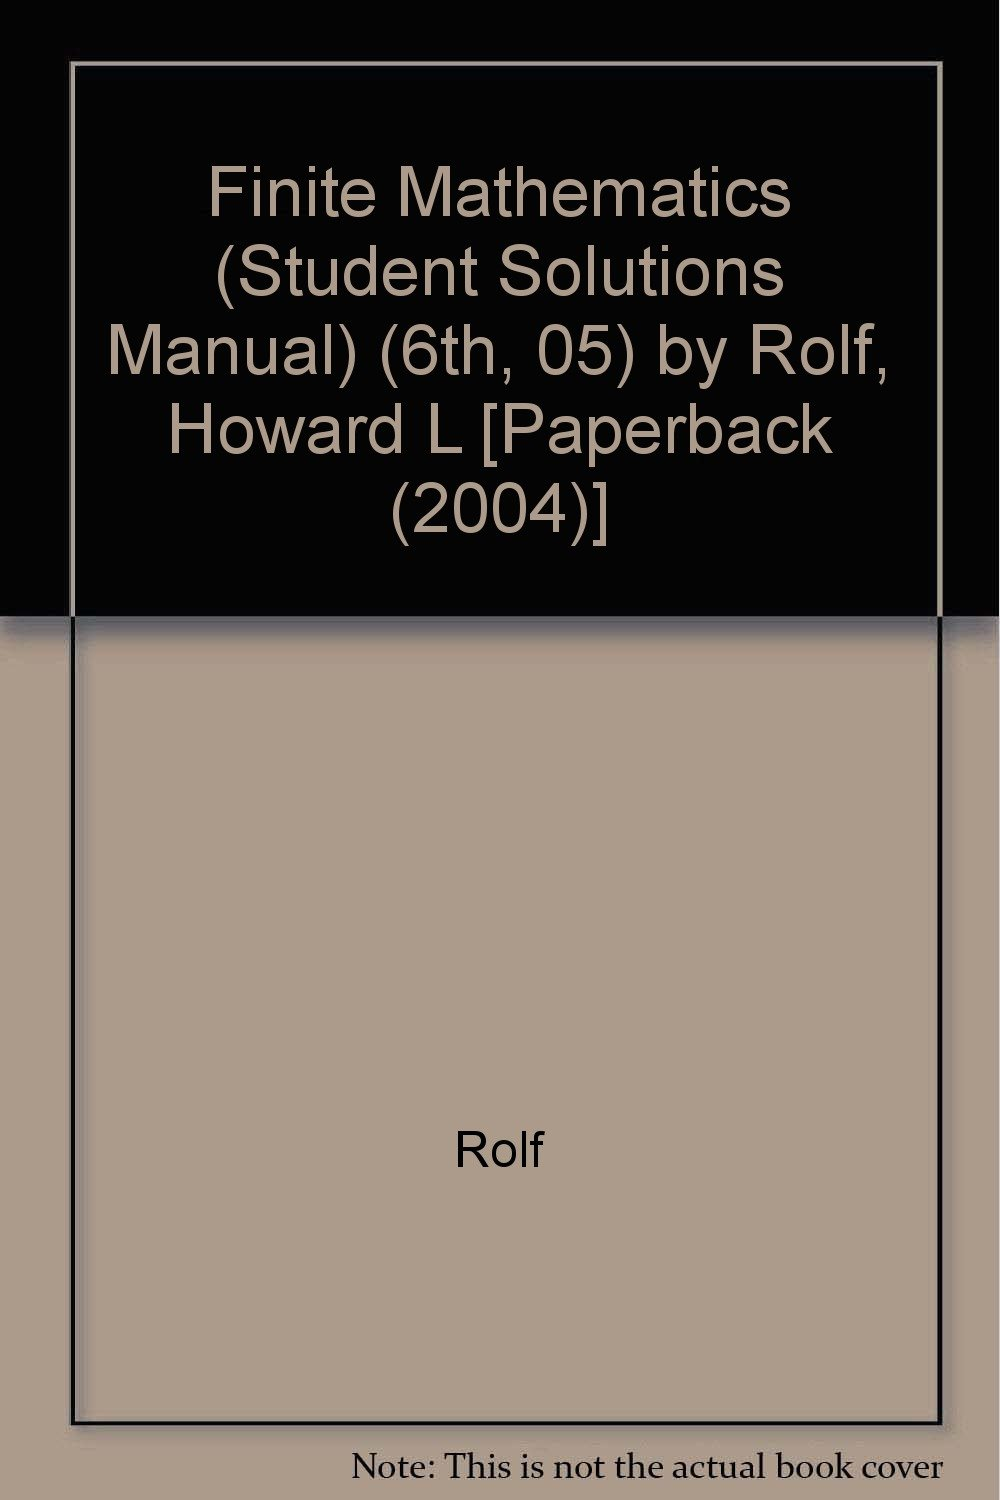 Read Online Finite Mathematics (Student Solutions Manual) (6th, 05) by Rolf, Howard L [Paperback (2004)] pdf